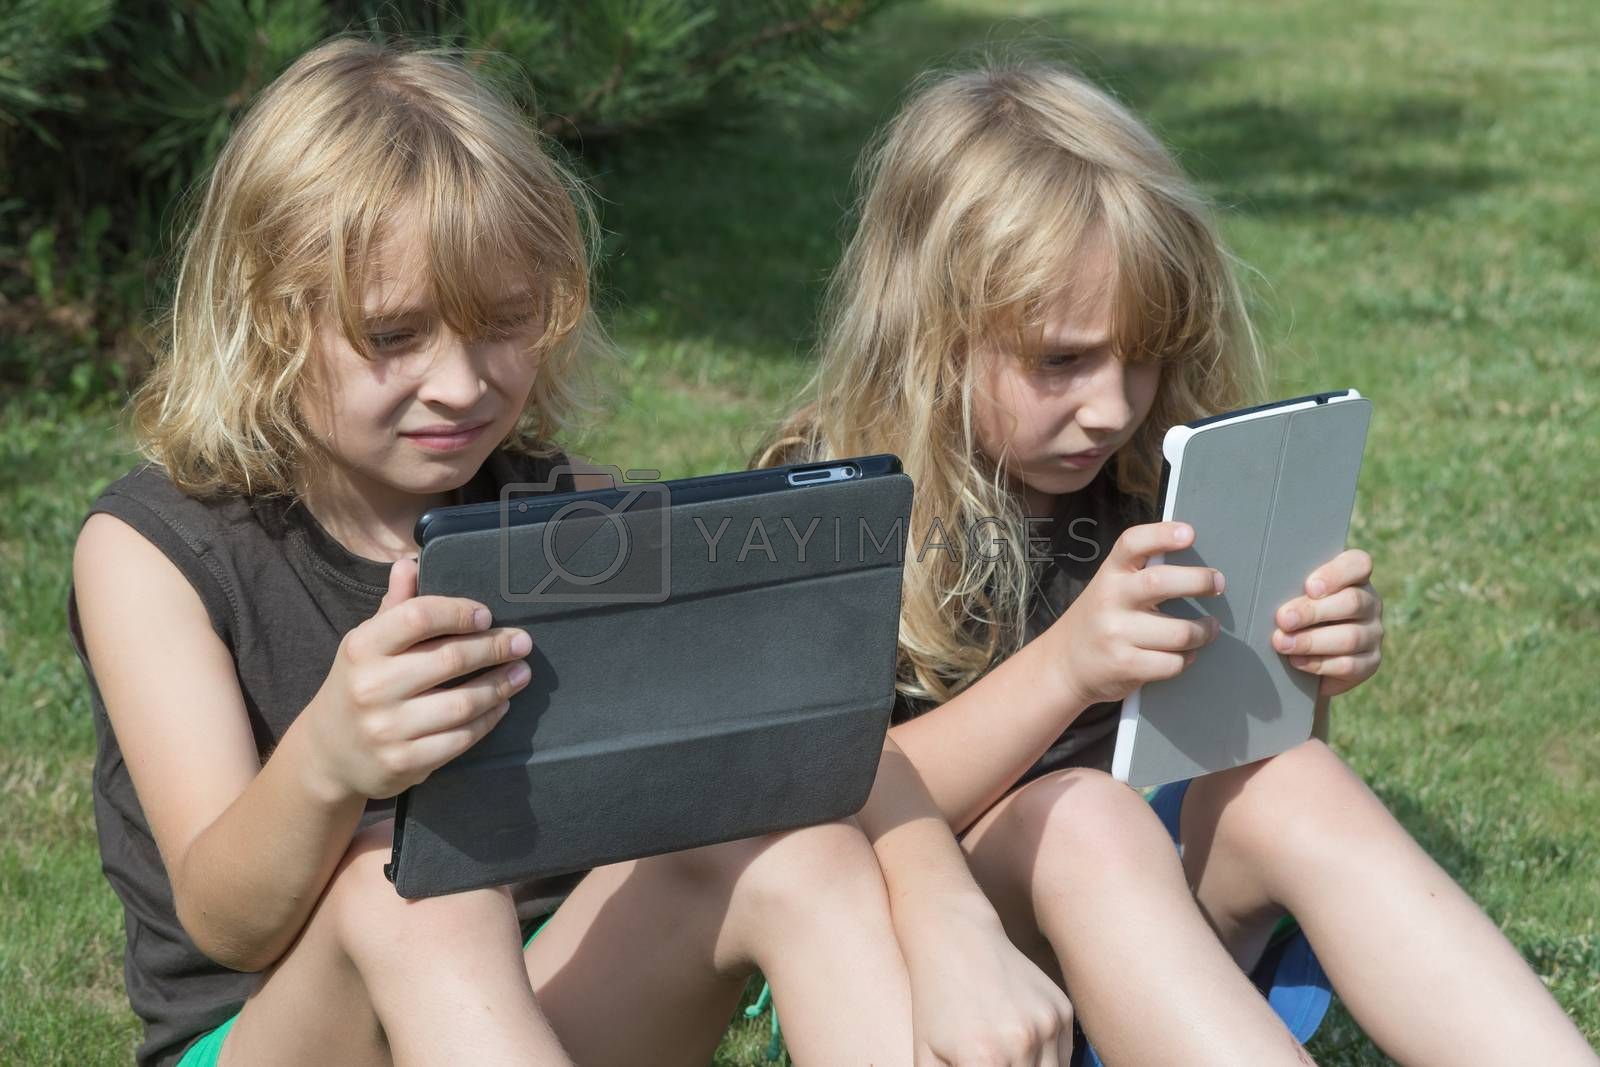 Two blond long haired boys are sitting on the lawn and are looking to the tablet. Both boys have opened their tablets. All potential trademarks are removed.